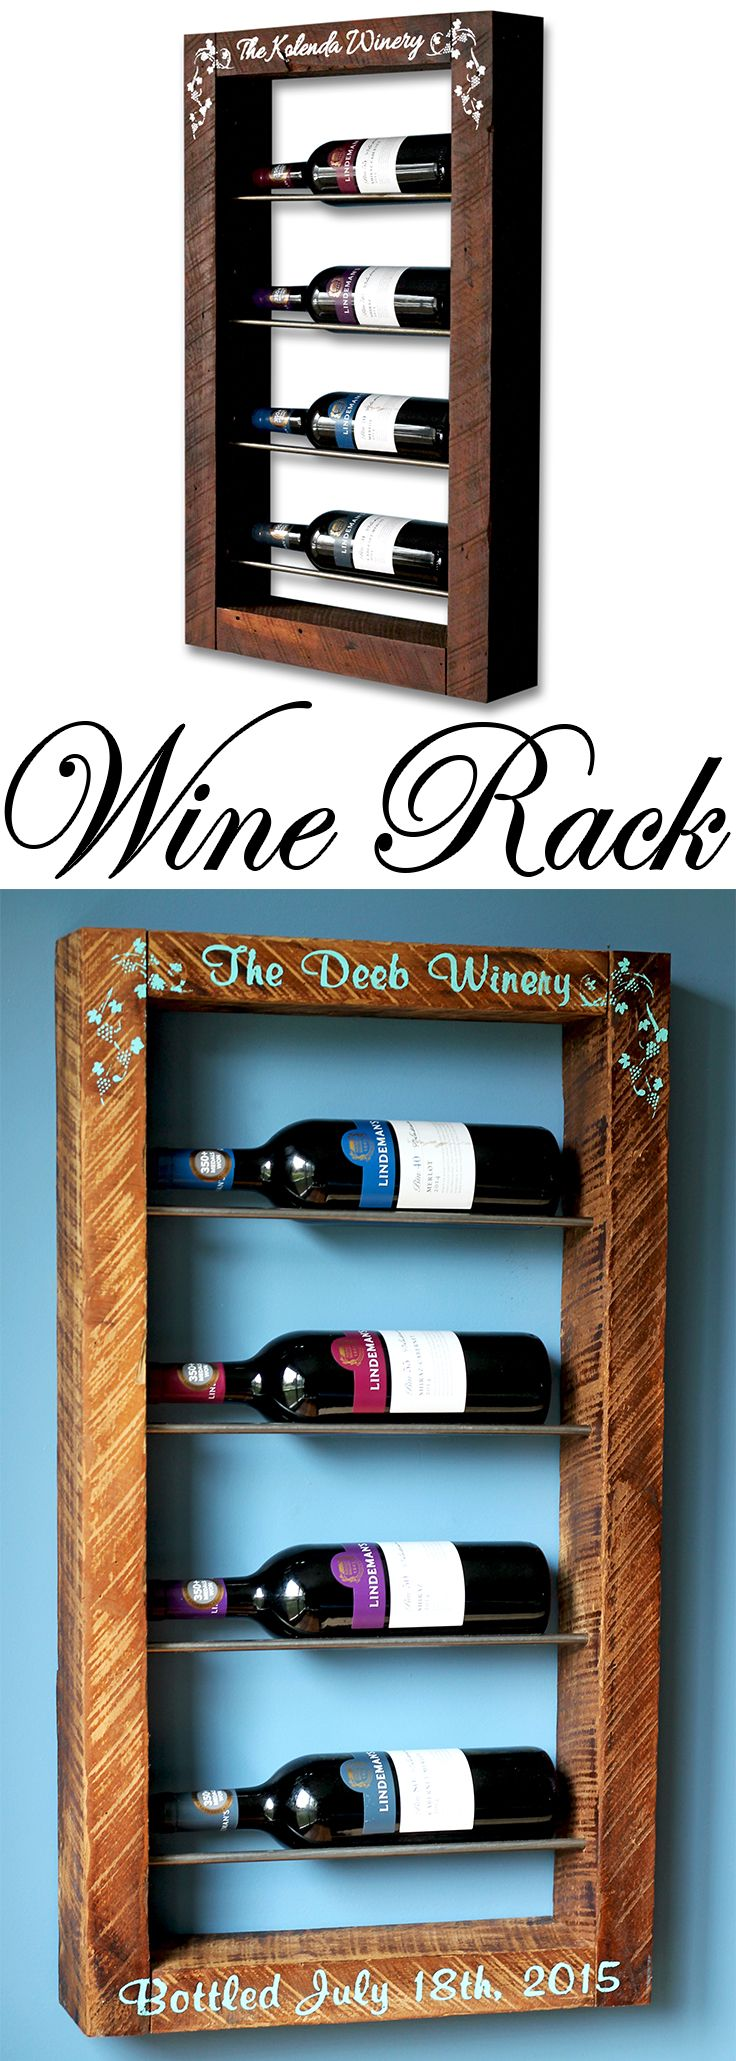 Wine Rack   Dreaming of New Creations   Pinterest   Rustic kitchen ...